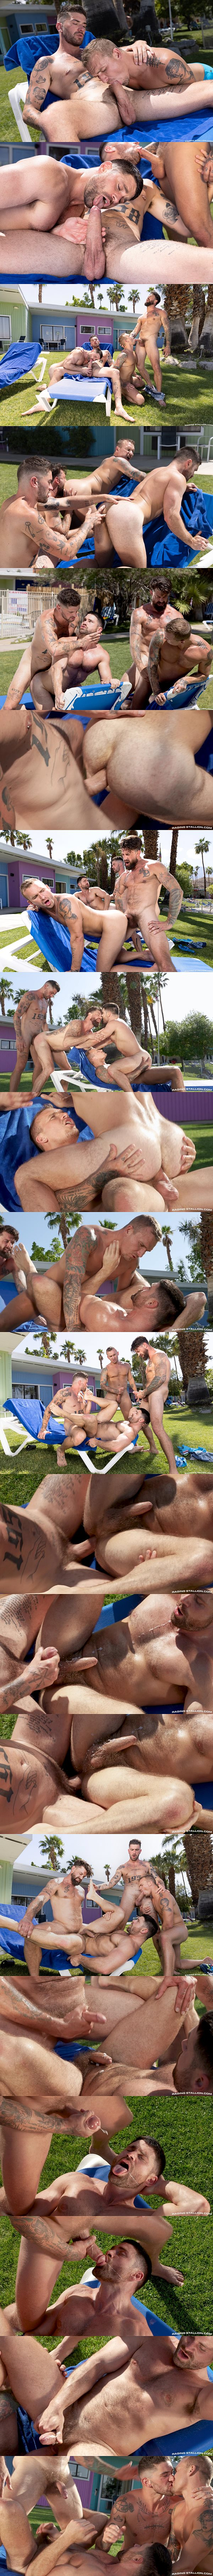 Ragingstallion - handsome muscle hunk Chris Damned barebacks Isaac X, Beau Butler and Alpha Wolfe in an outdoor fourway until they shoot their creamy loads 02